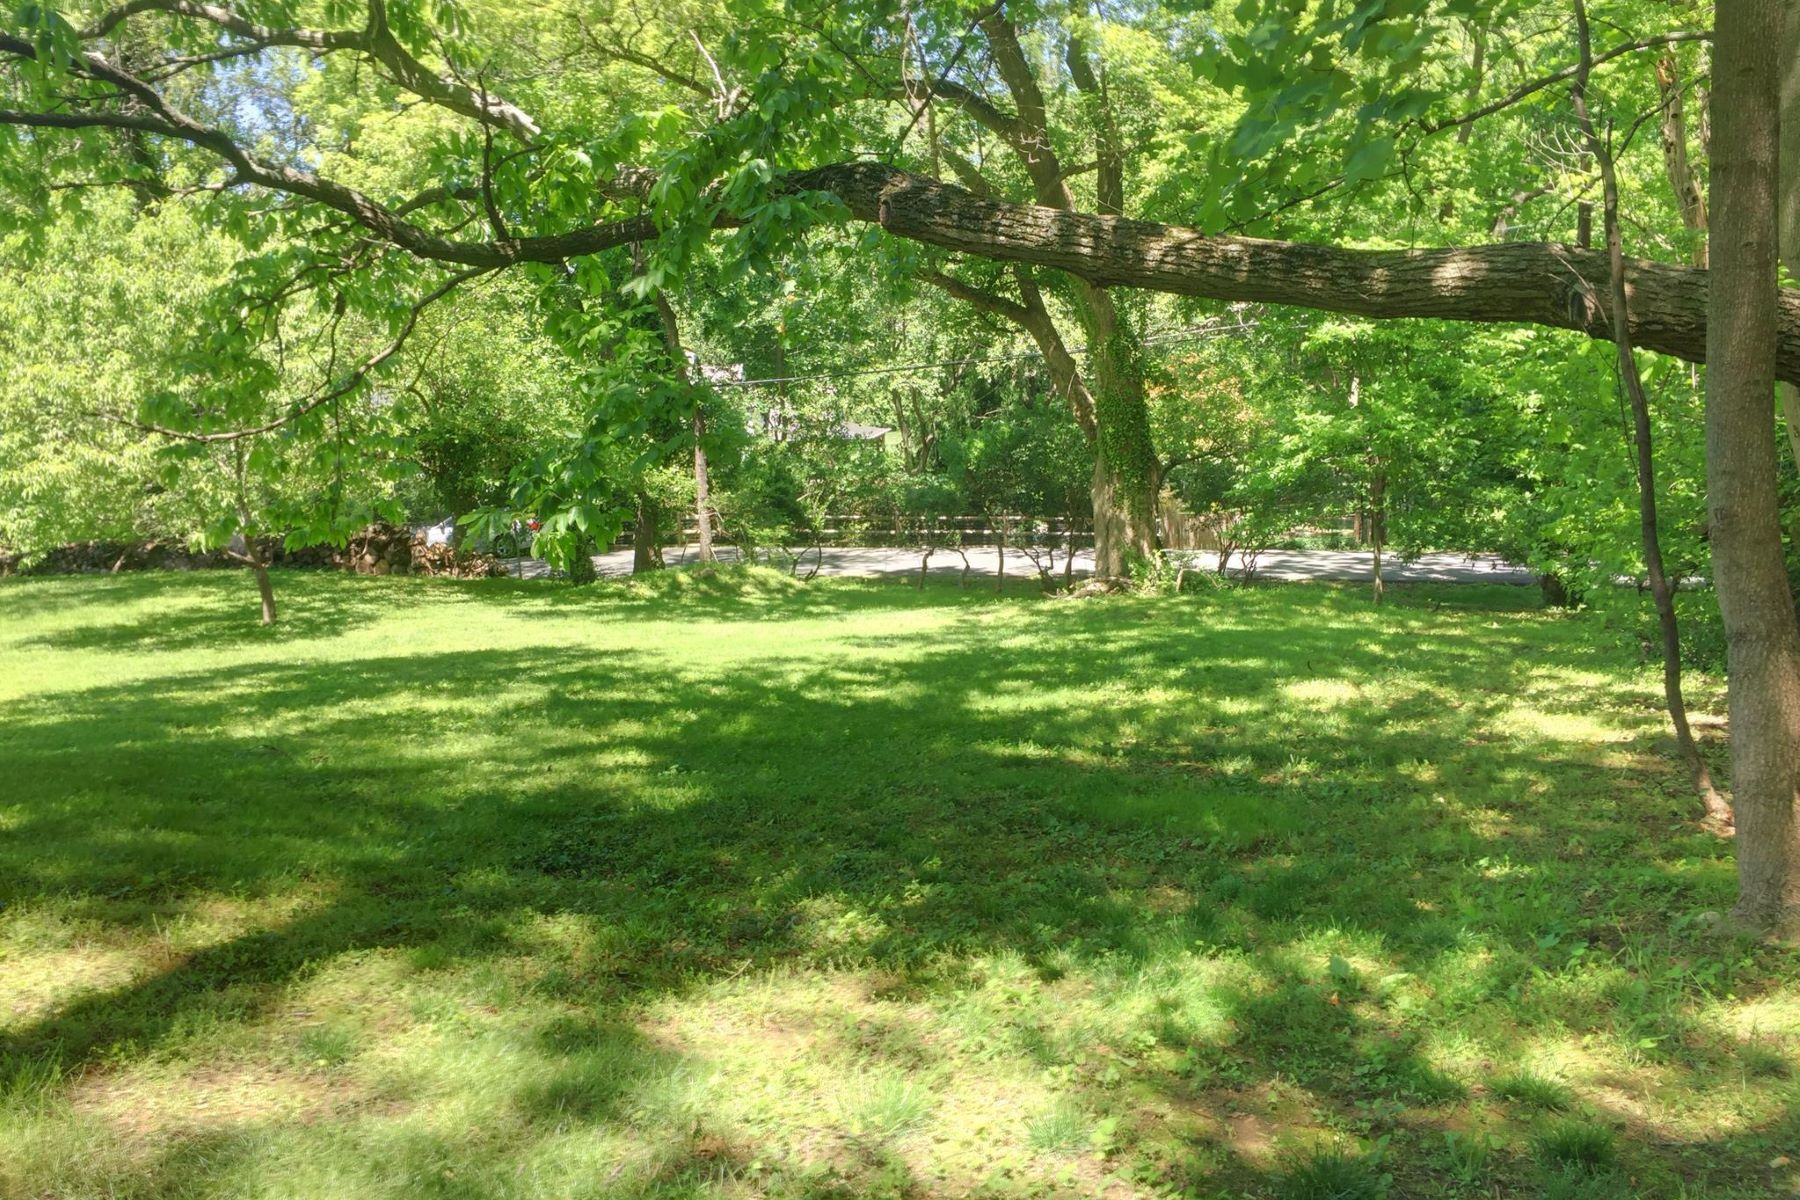 Additional photo for property listing at 1013 Turkey Run Rd 1013 Turkey Run Rd McLean, Virginia 22101 United States